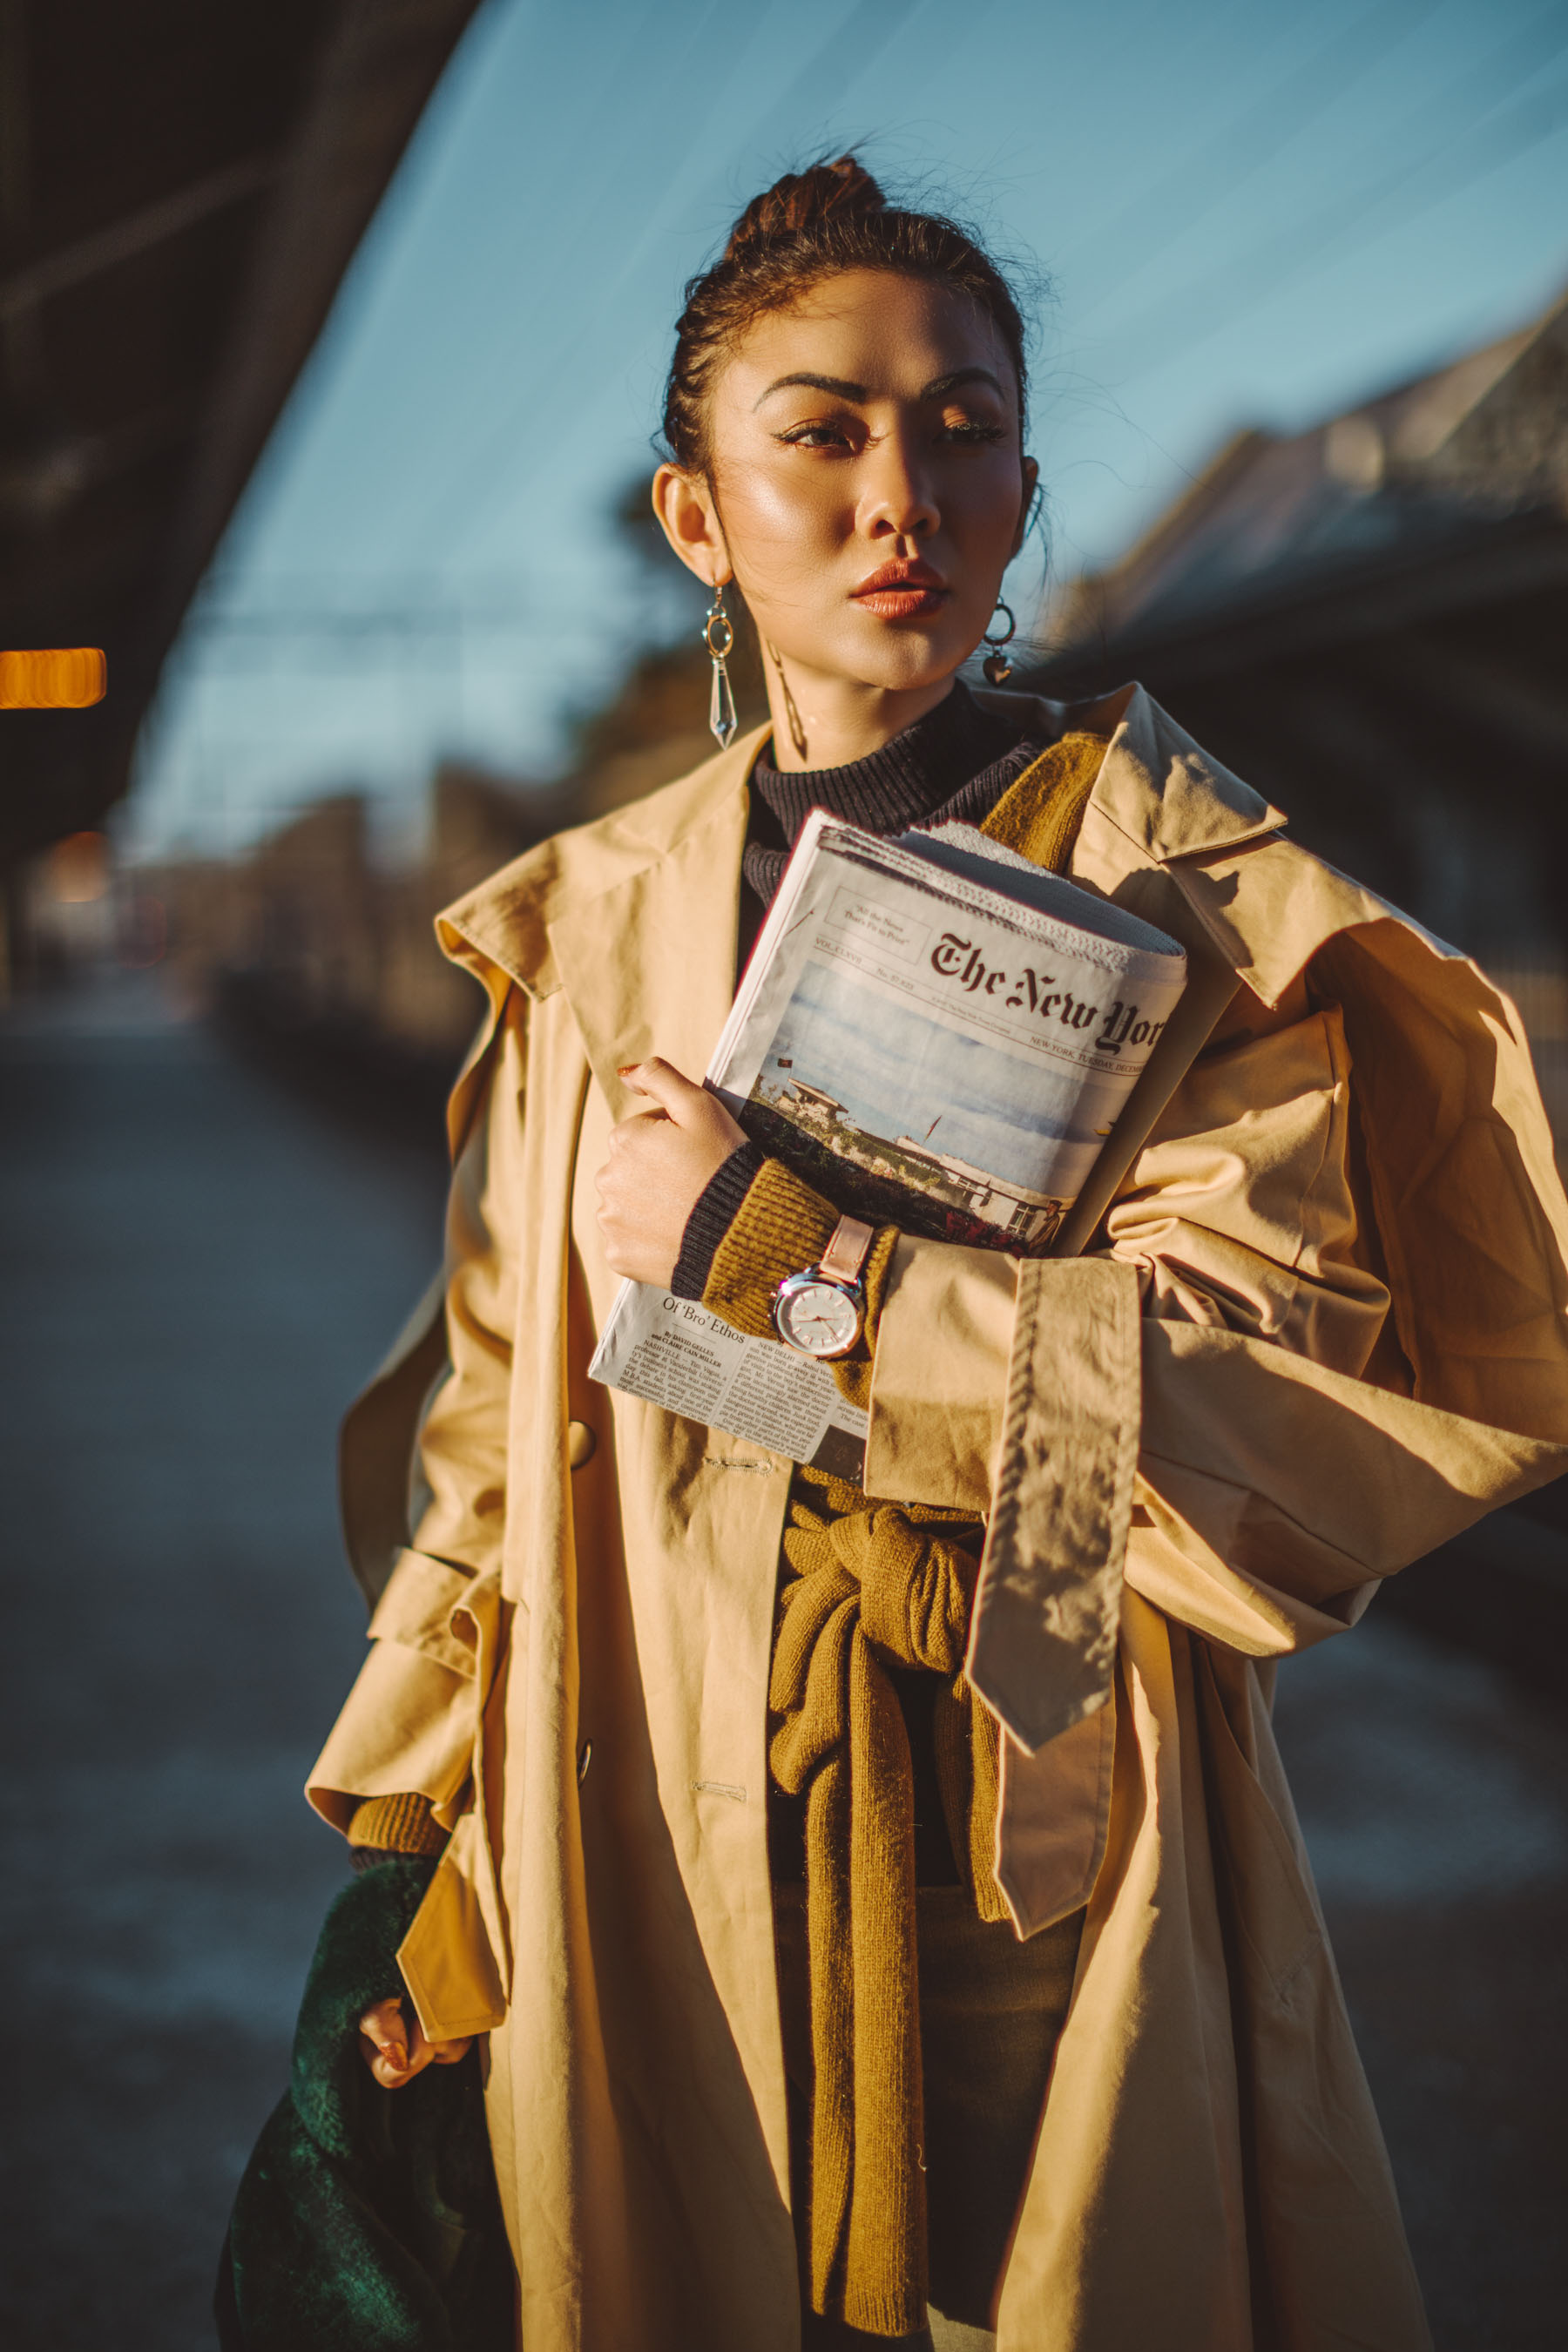 Instagram Outfits Round Up // Notjessfashion.com // Cozy Layered looks, jessica wang, fashion blogger, new york fashion blogger, street style fashion, ootd, asian blogger, oversized trench coat, leather band watch, layered style